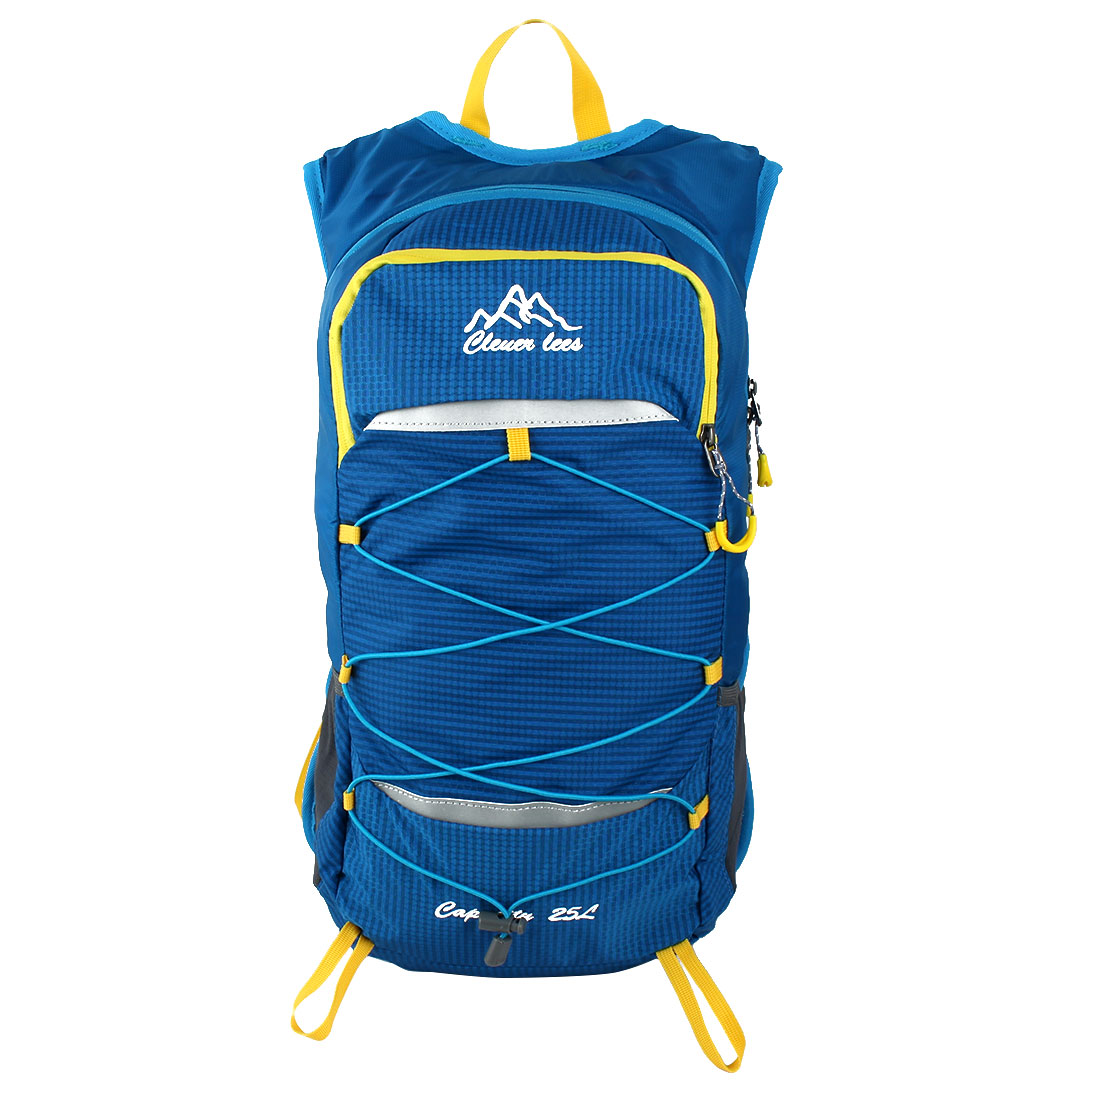 Camping Hiking Climbing Backpack Bicycle Cycling Daypack Outdoor Sports Bag Blue